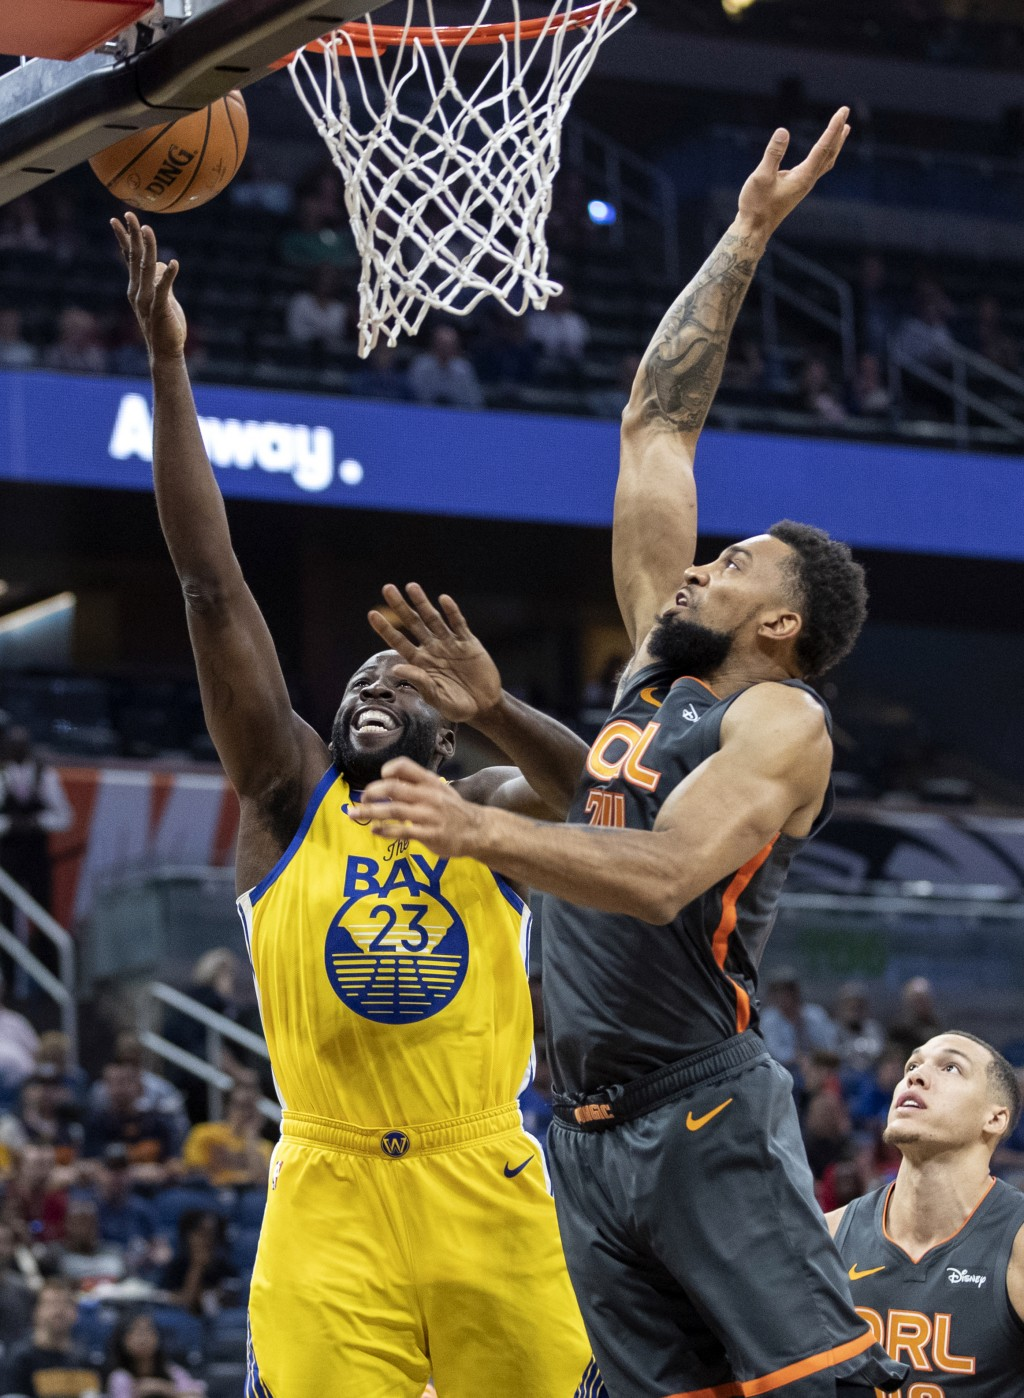 Golden State Warriors forward Draymond Green (23) lays the ball up on Orlando Magic center Khem Birch (24) during the first half of an NBA basketball ...